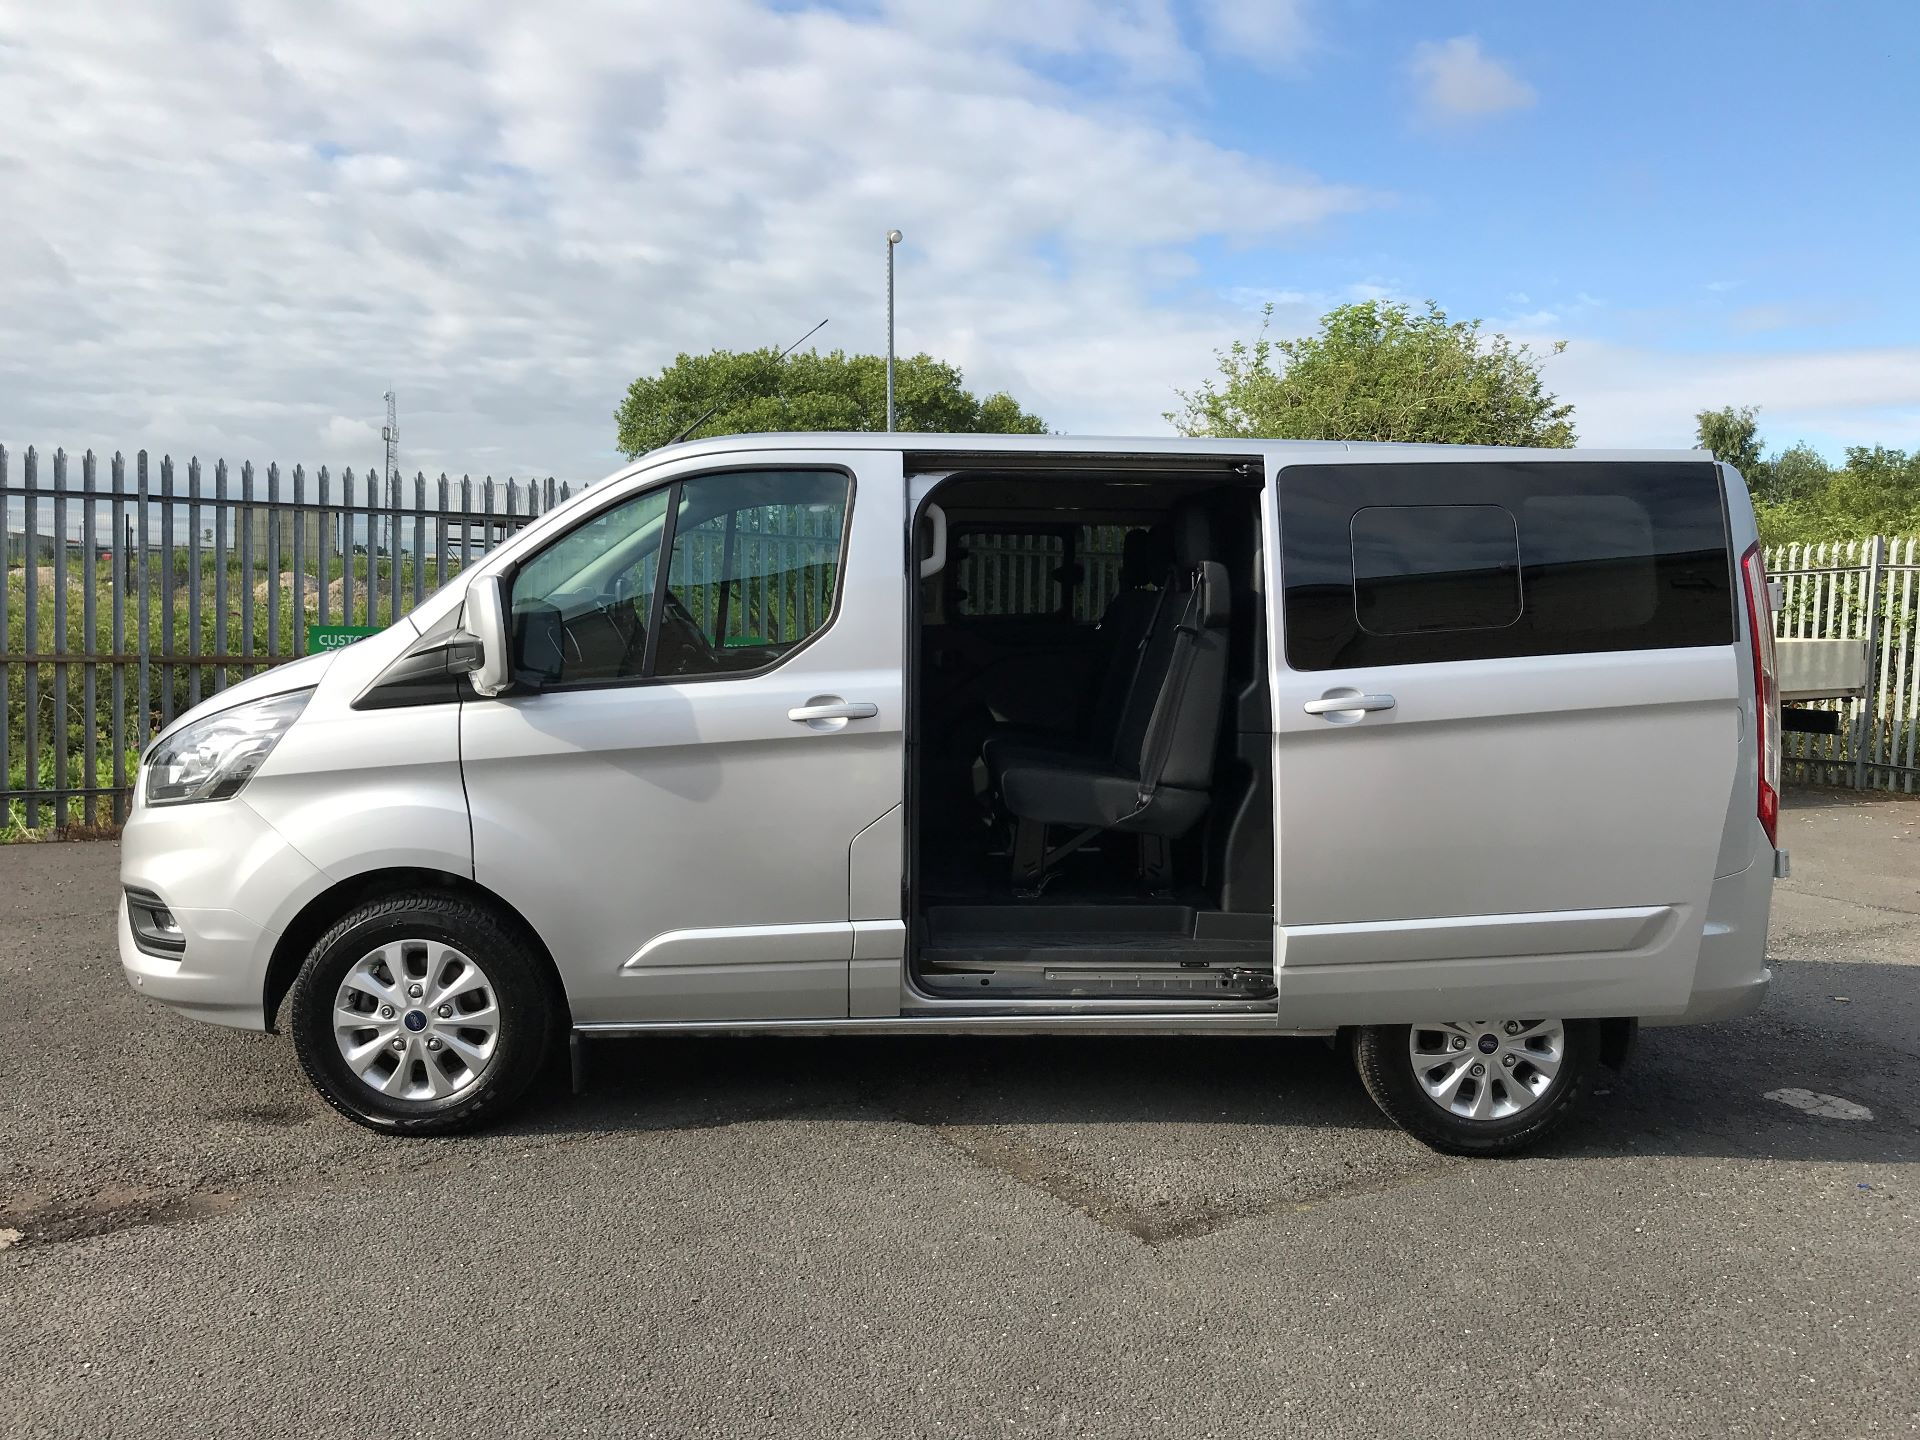 2018 Ford Transit Custom 320 L1 2.0TDCI 130PS LOW ROOF DOUBLE CAB LIMITED EURO 6 (HG68MPZ) Image 15